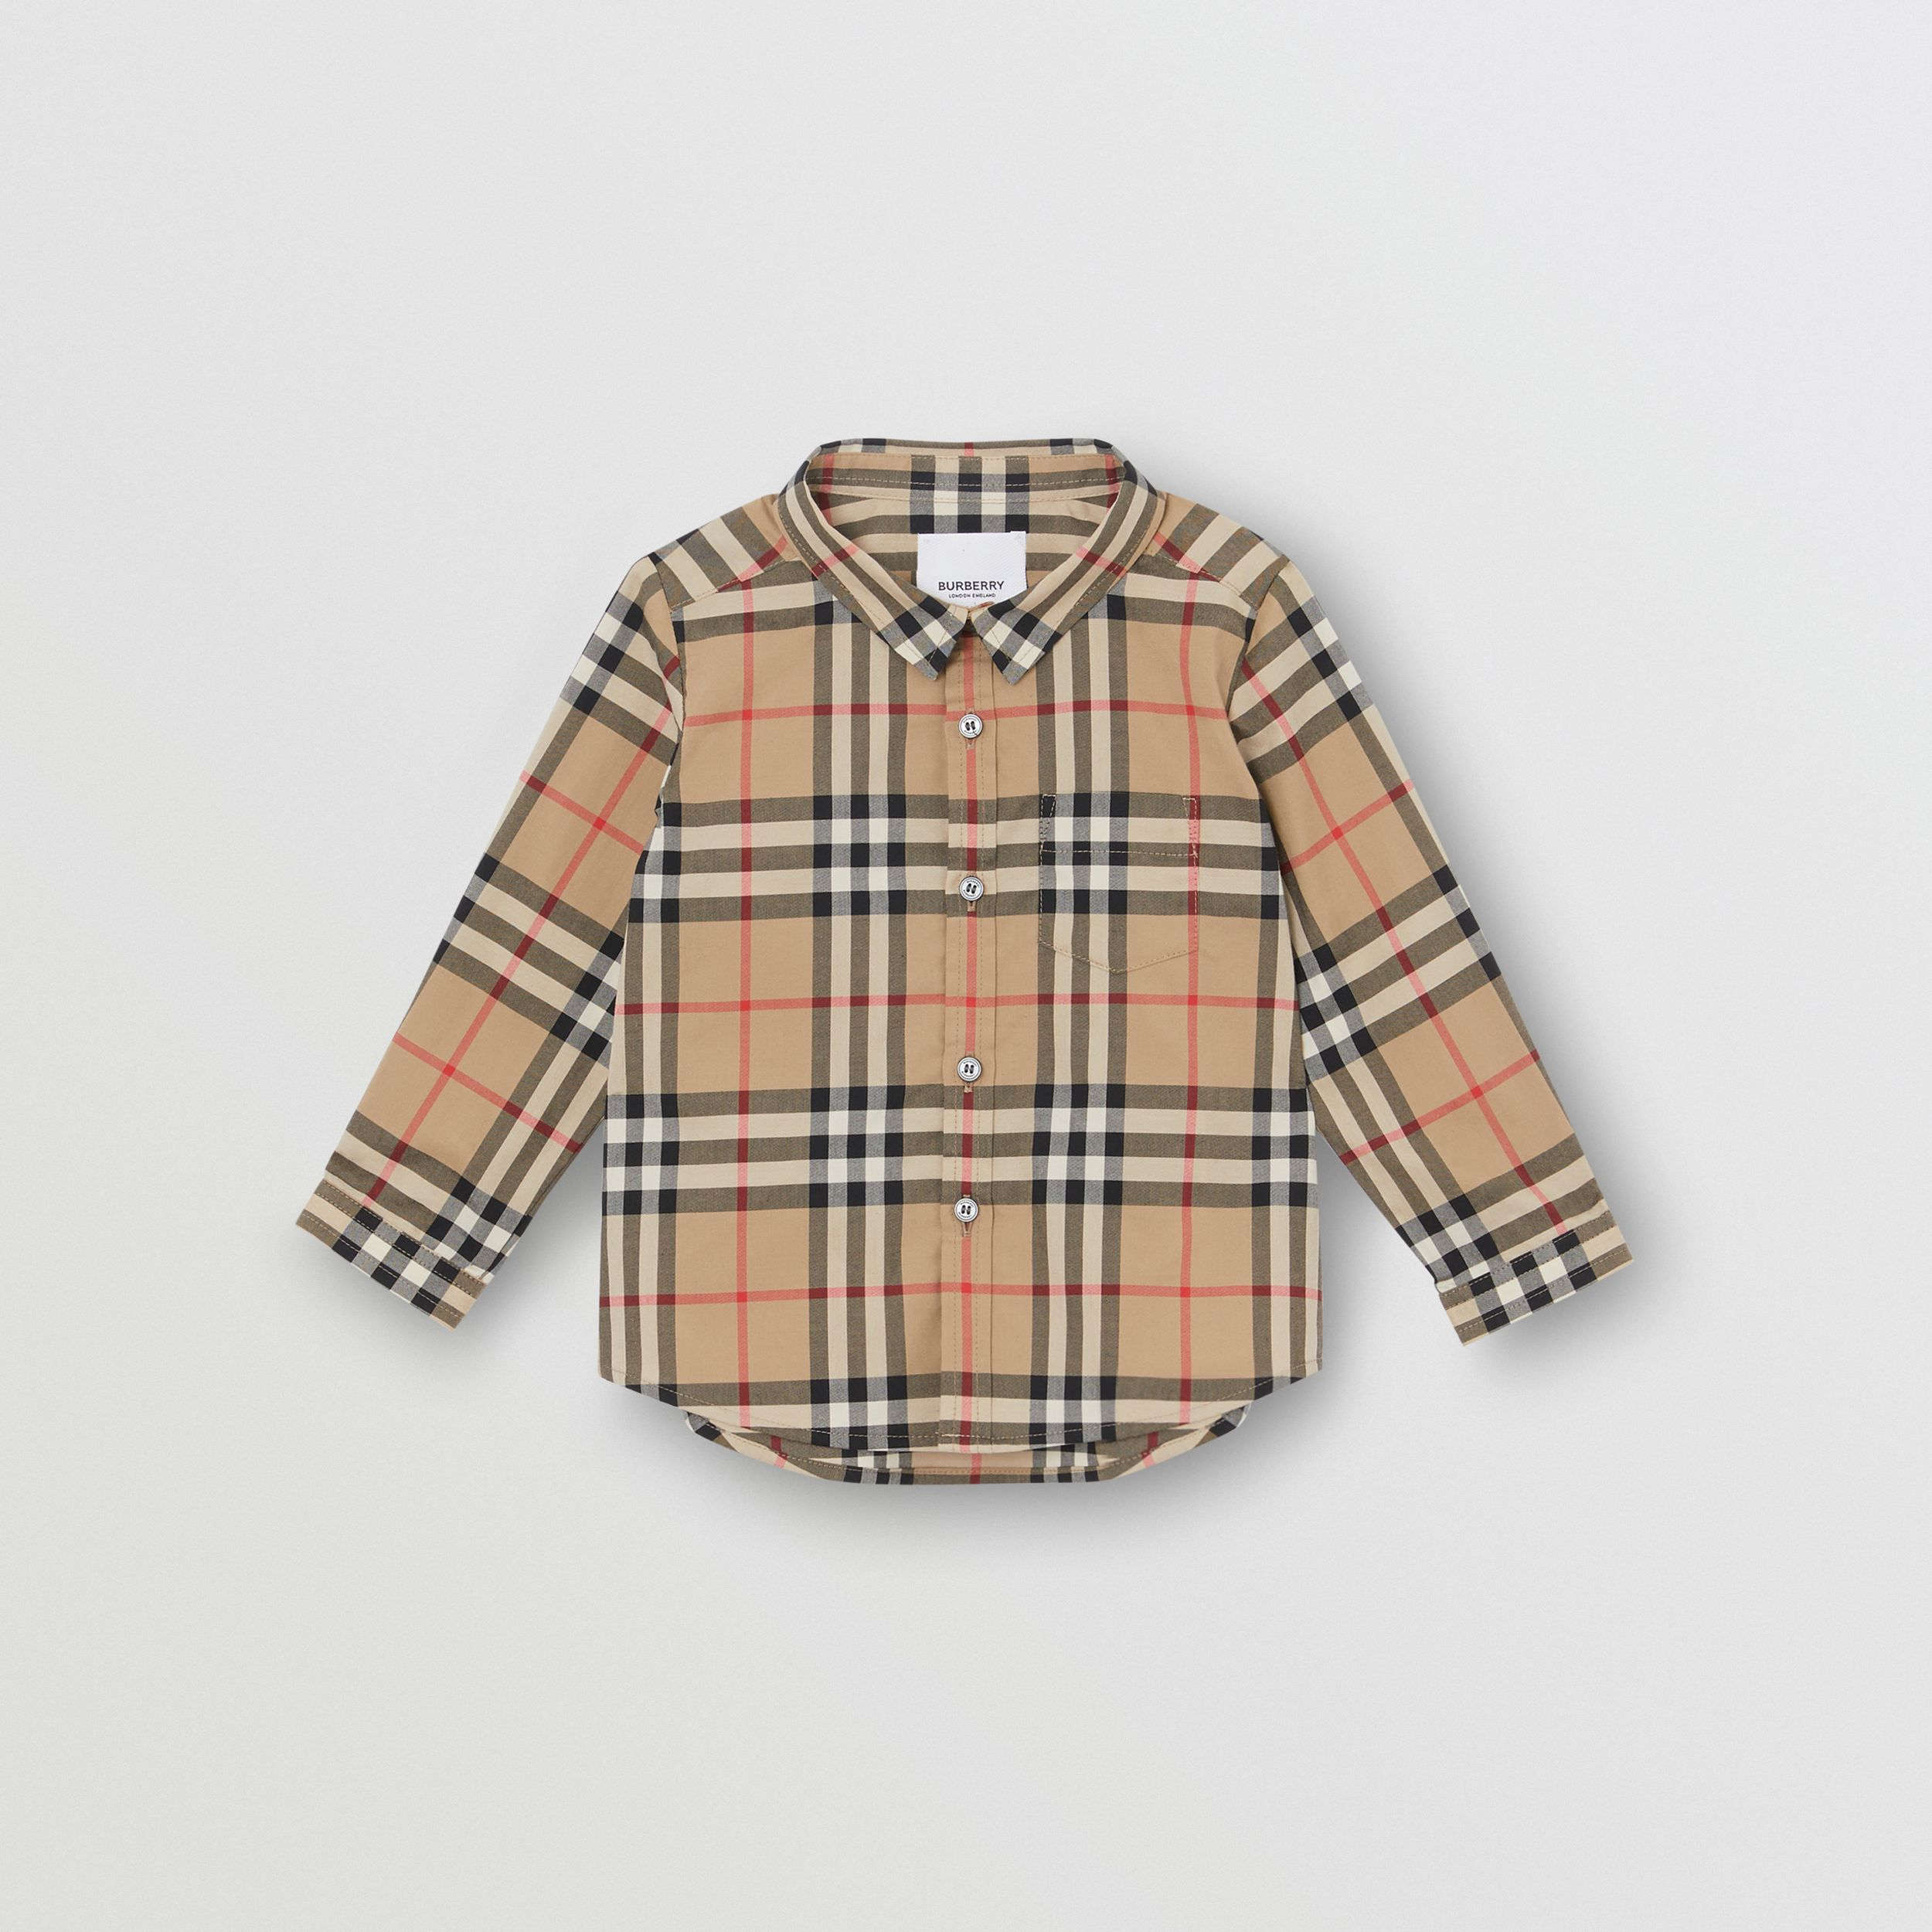 Vintage Check Cotton Shirt in Archive Beige - Children | Burberry Canada - 1